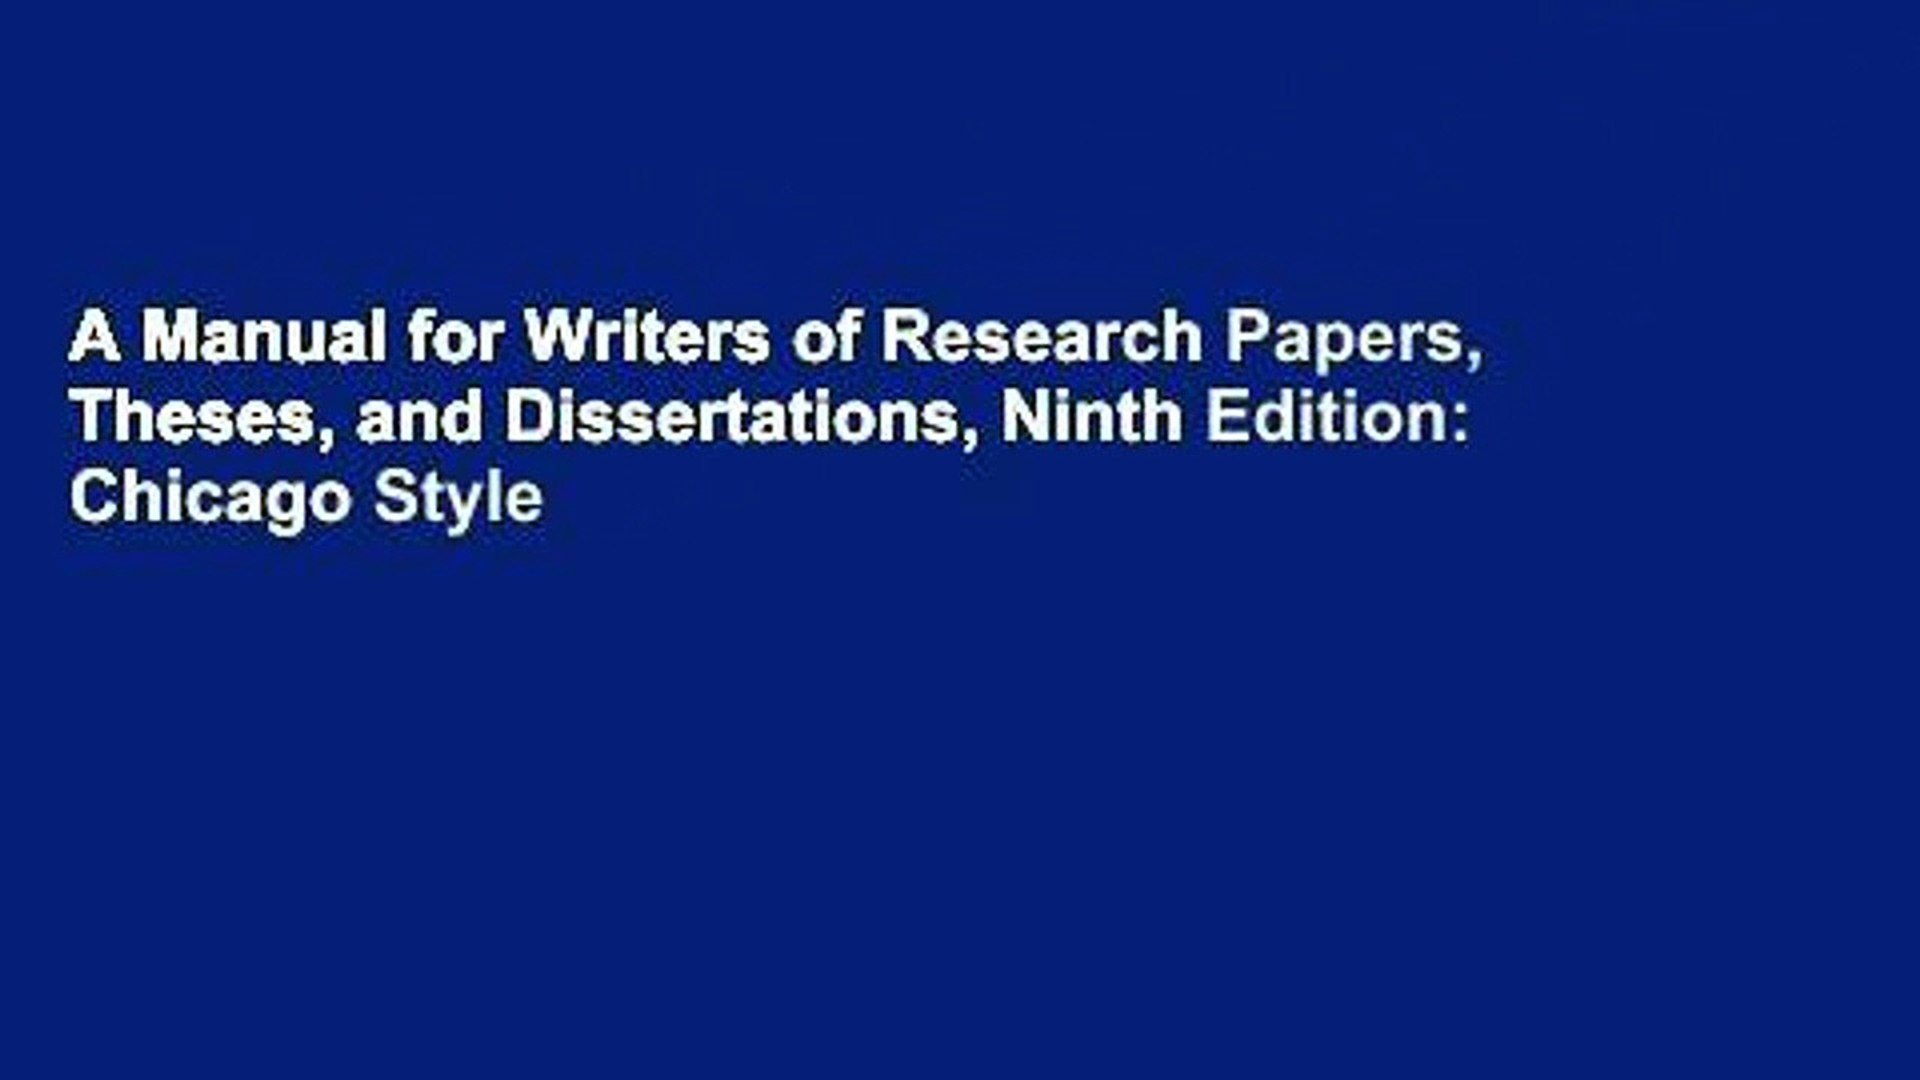 019 X1080 V4x Manual For Writers Of Researchs Theses And Dissertations 9th Edition Frightening A Research Papers Pdf 1920